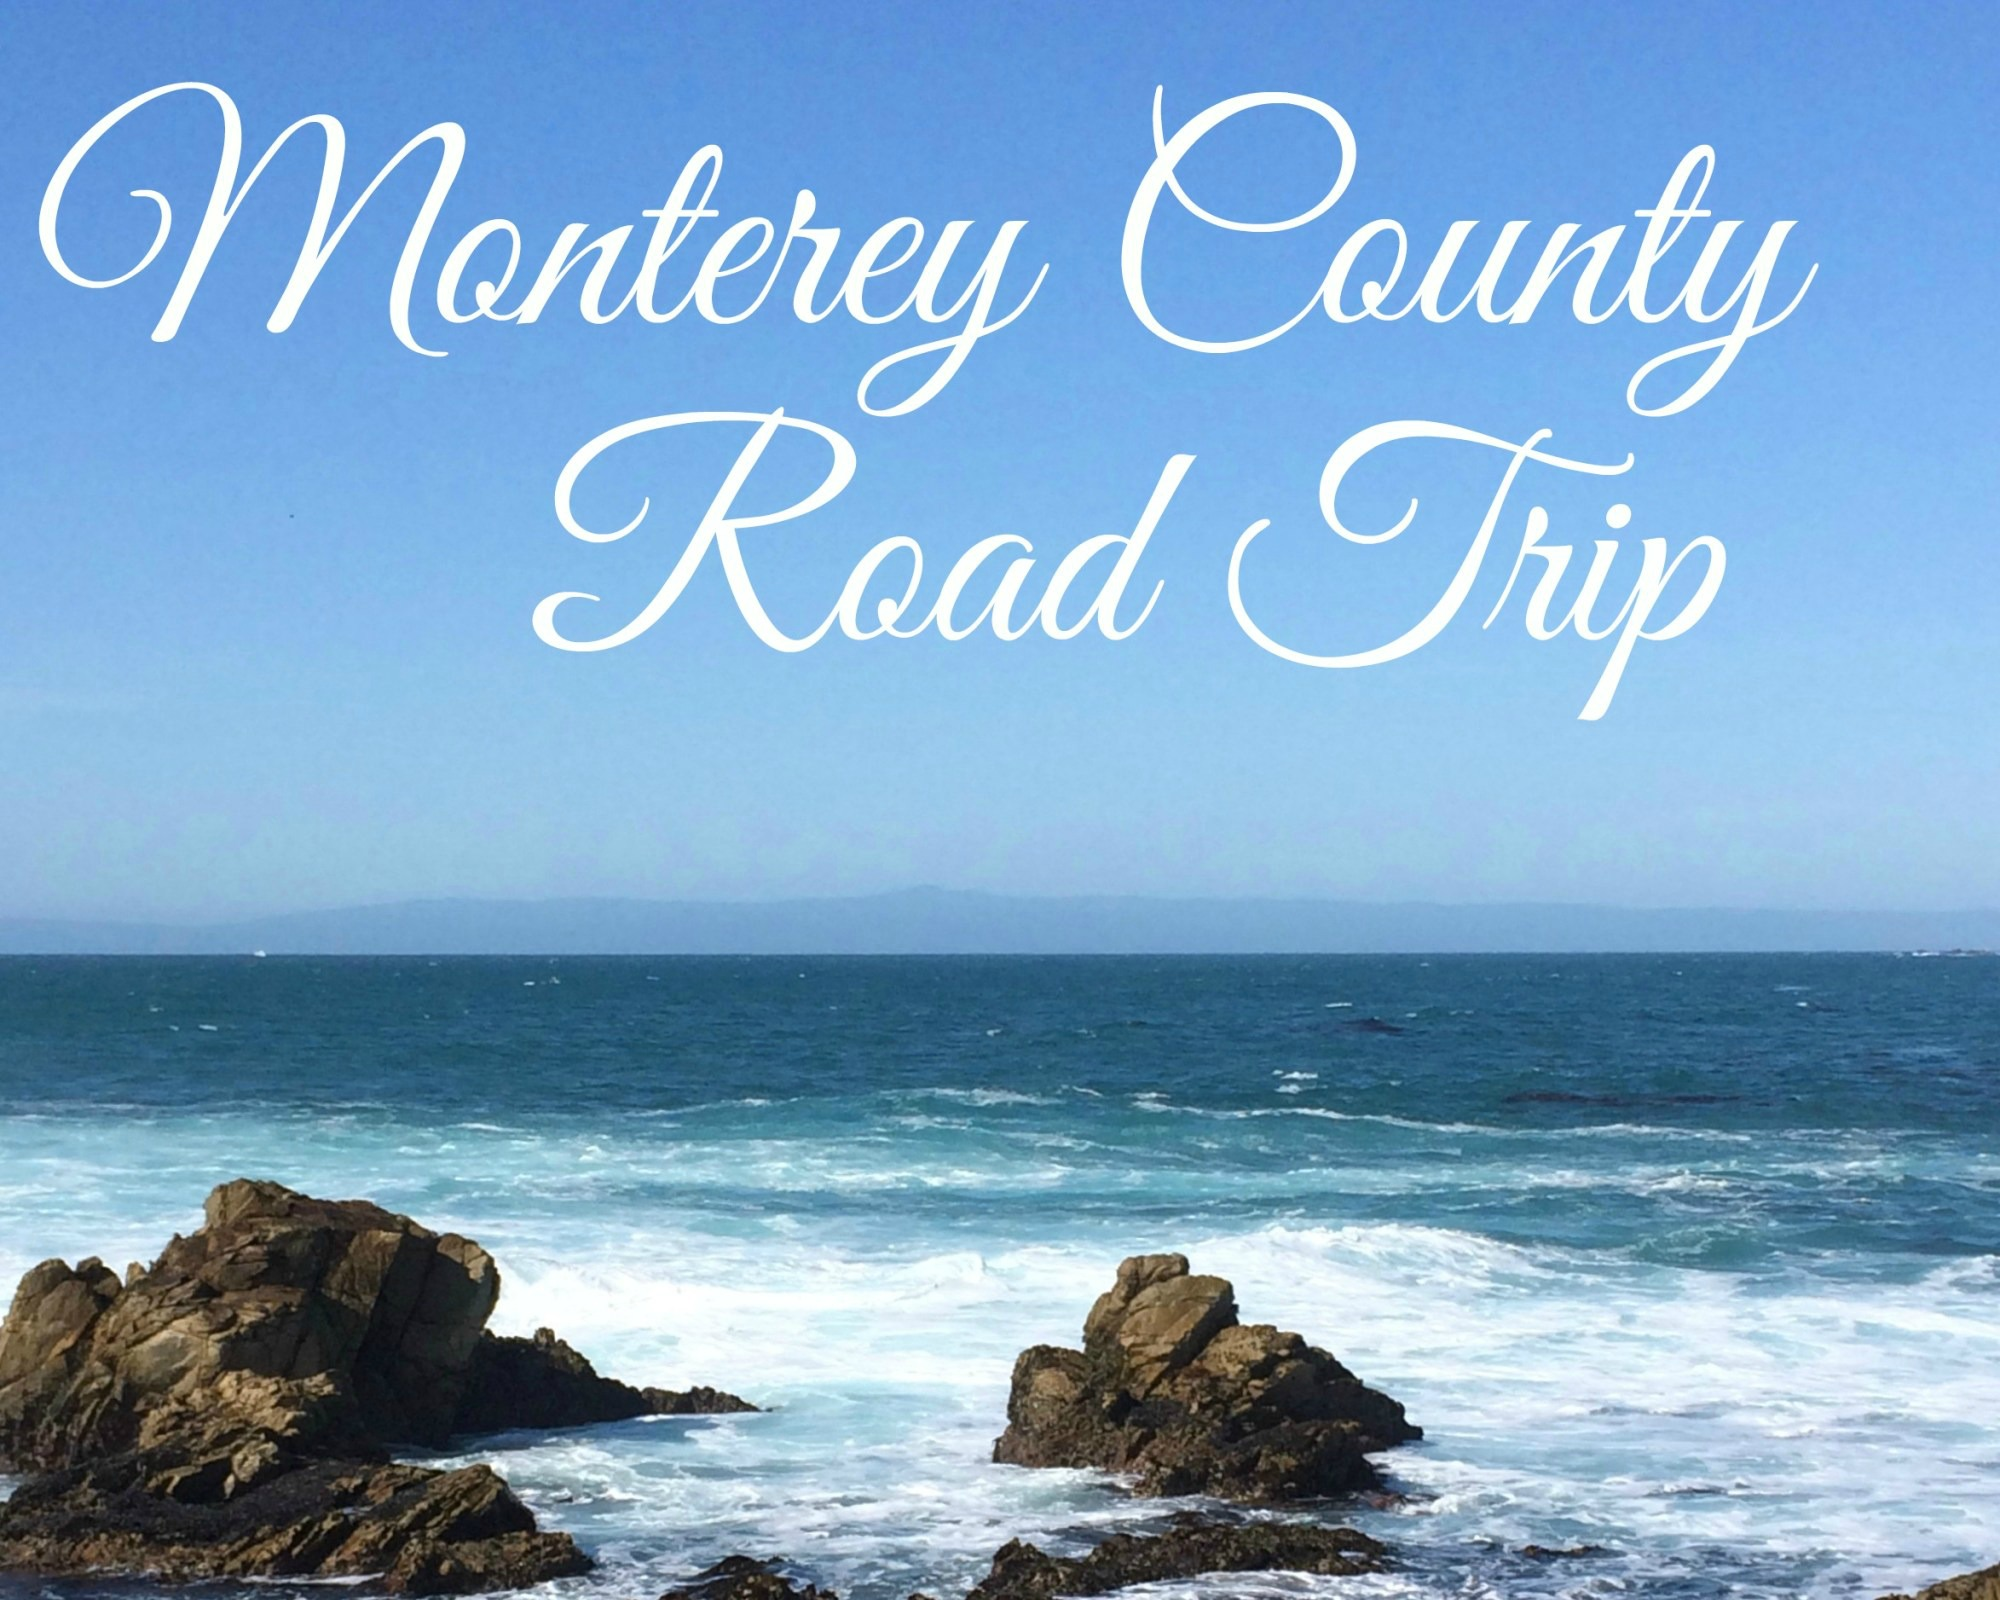 Monterey County Road Trip